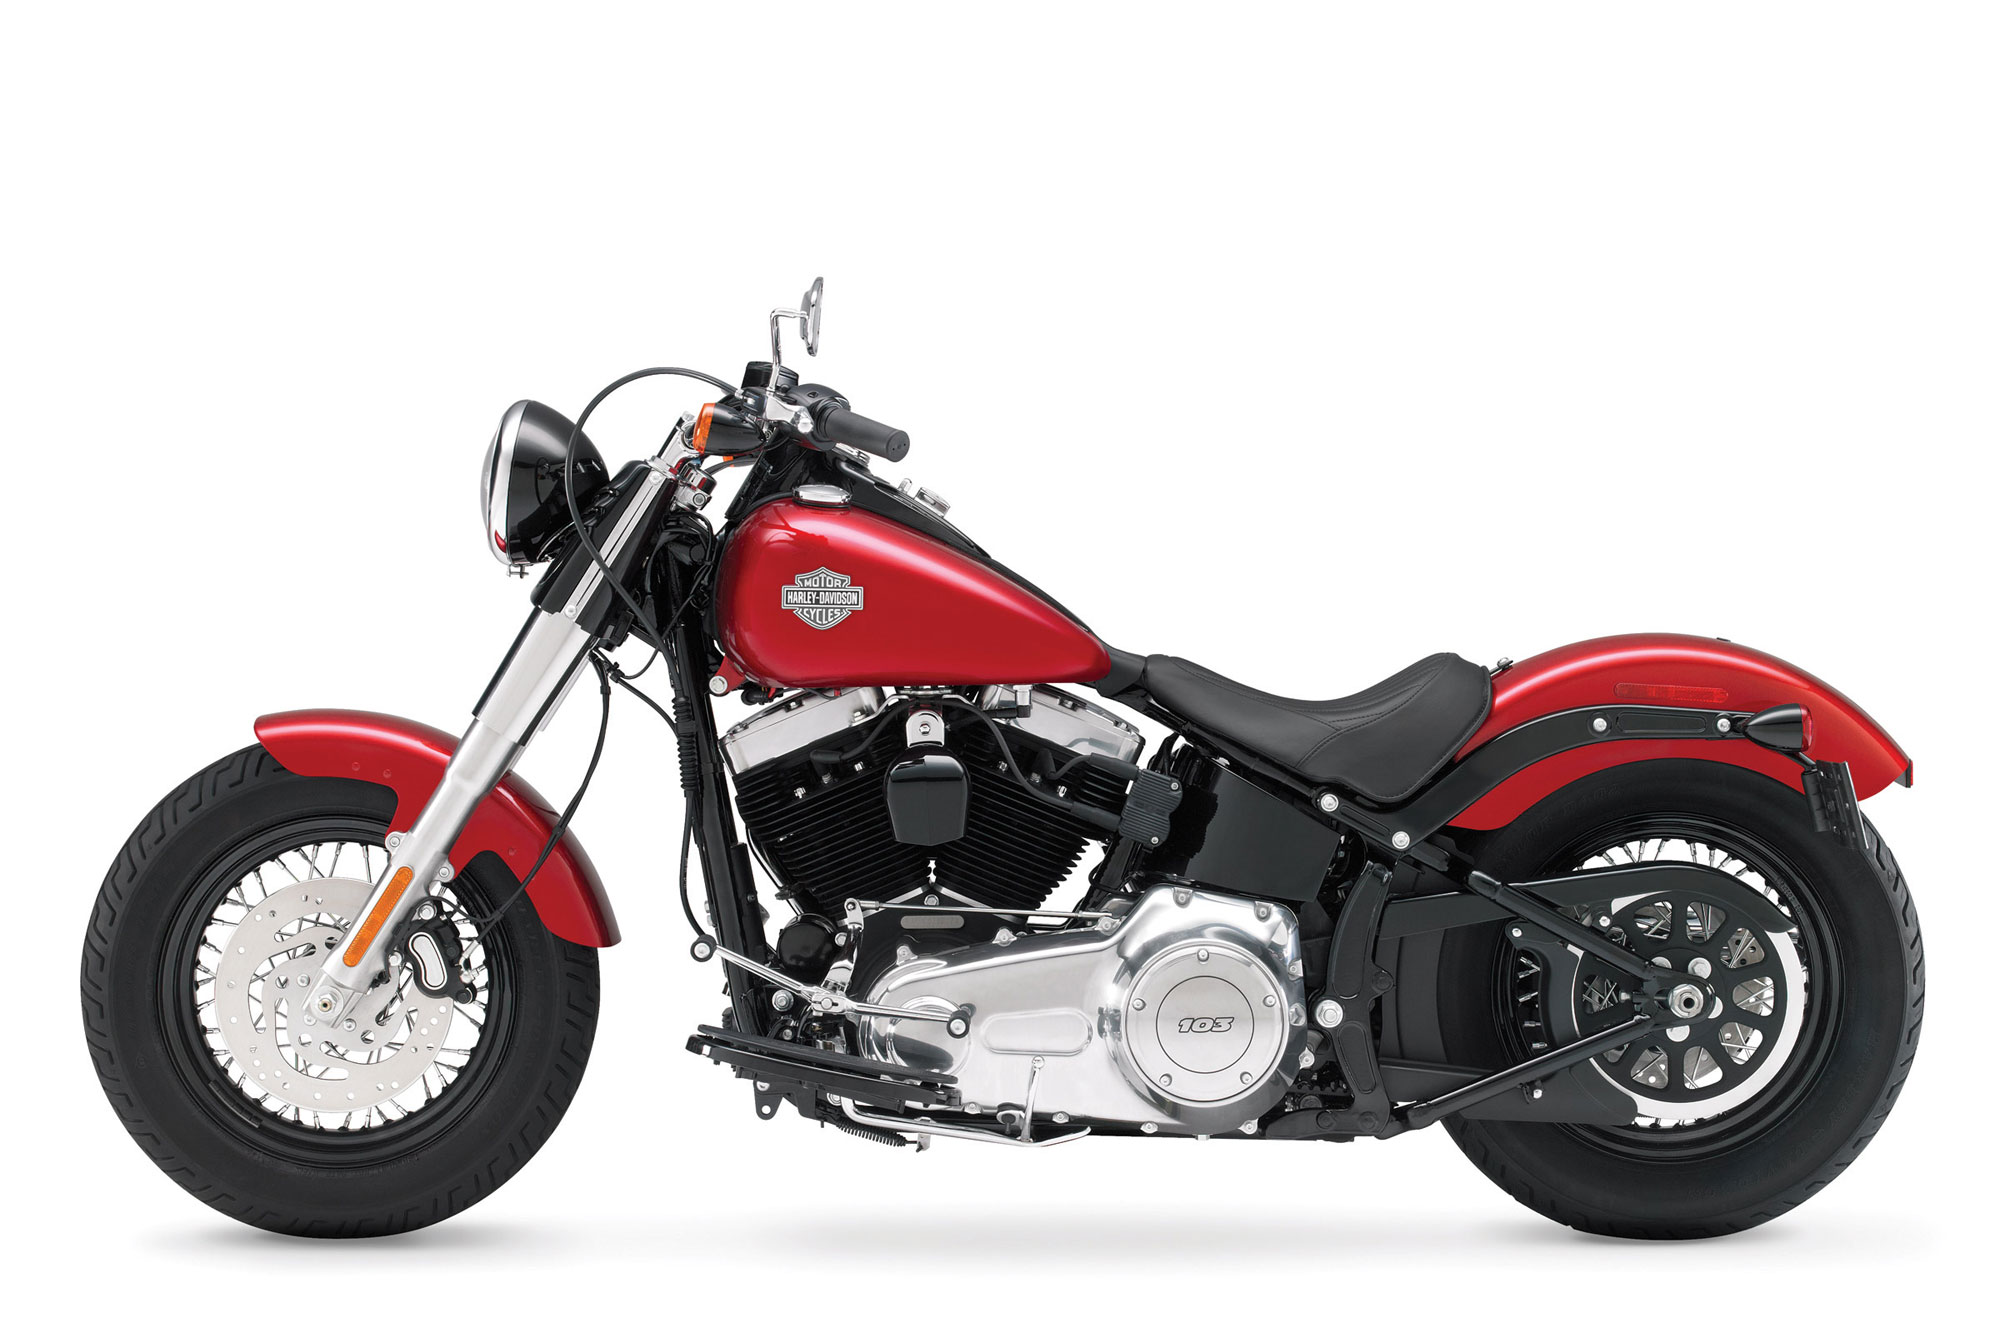 hight resolution of harley davidson 1690 engine diagram wiring library 99 harley softail wiring diagrams harley davidson 2013 softail slim wiring diagram